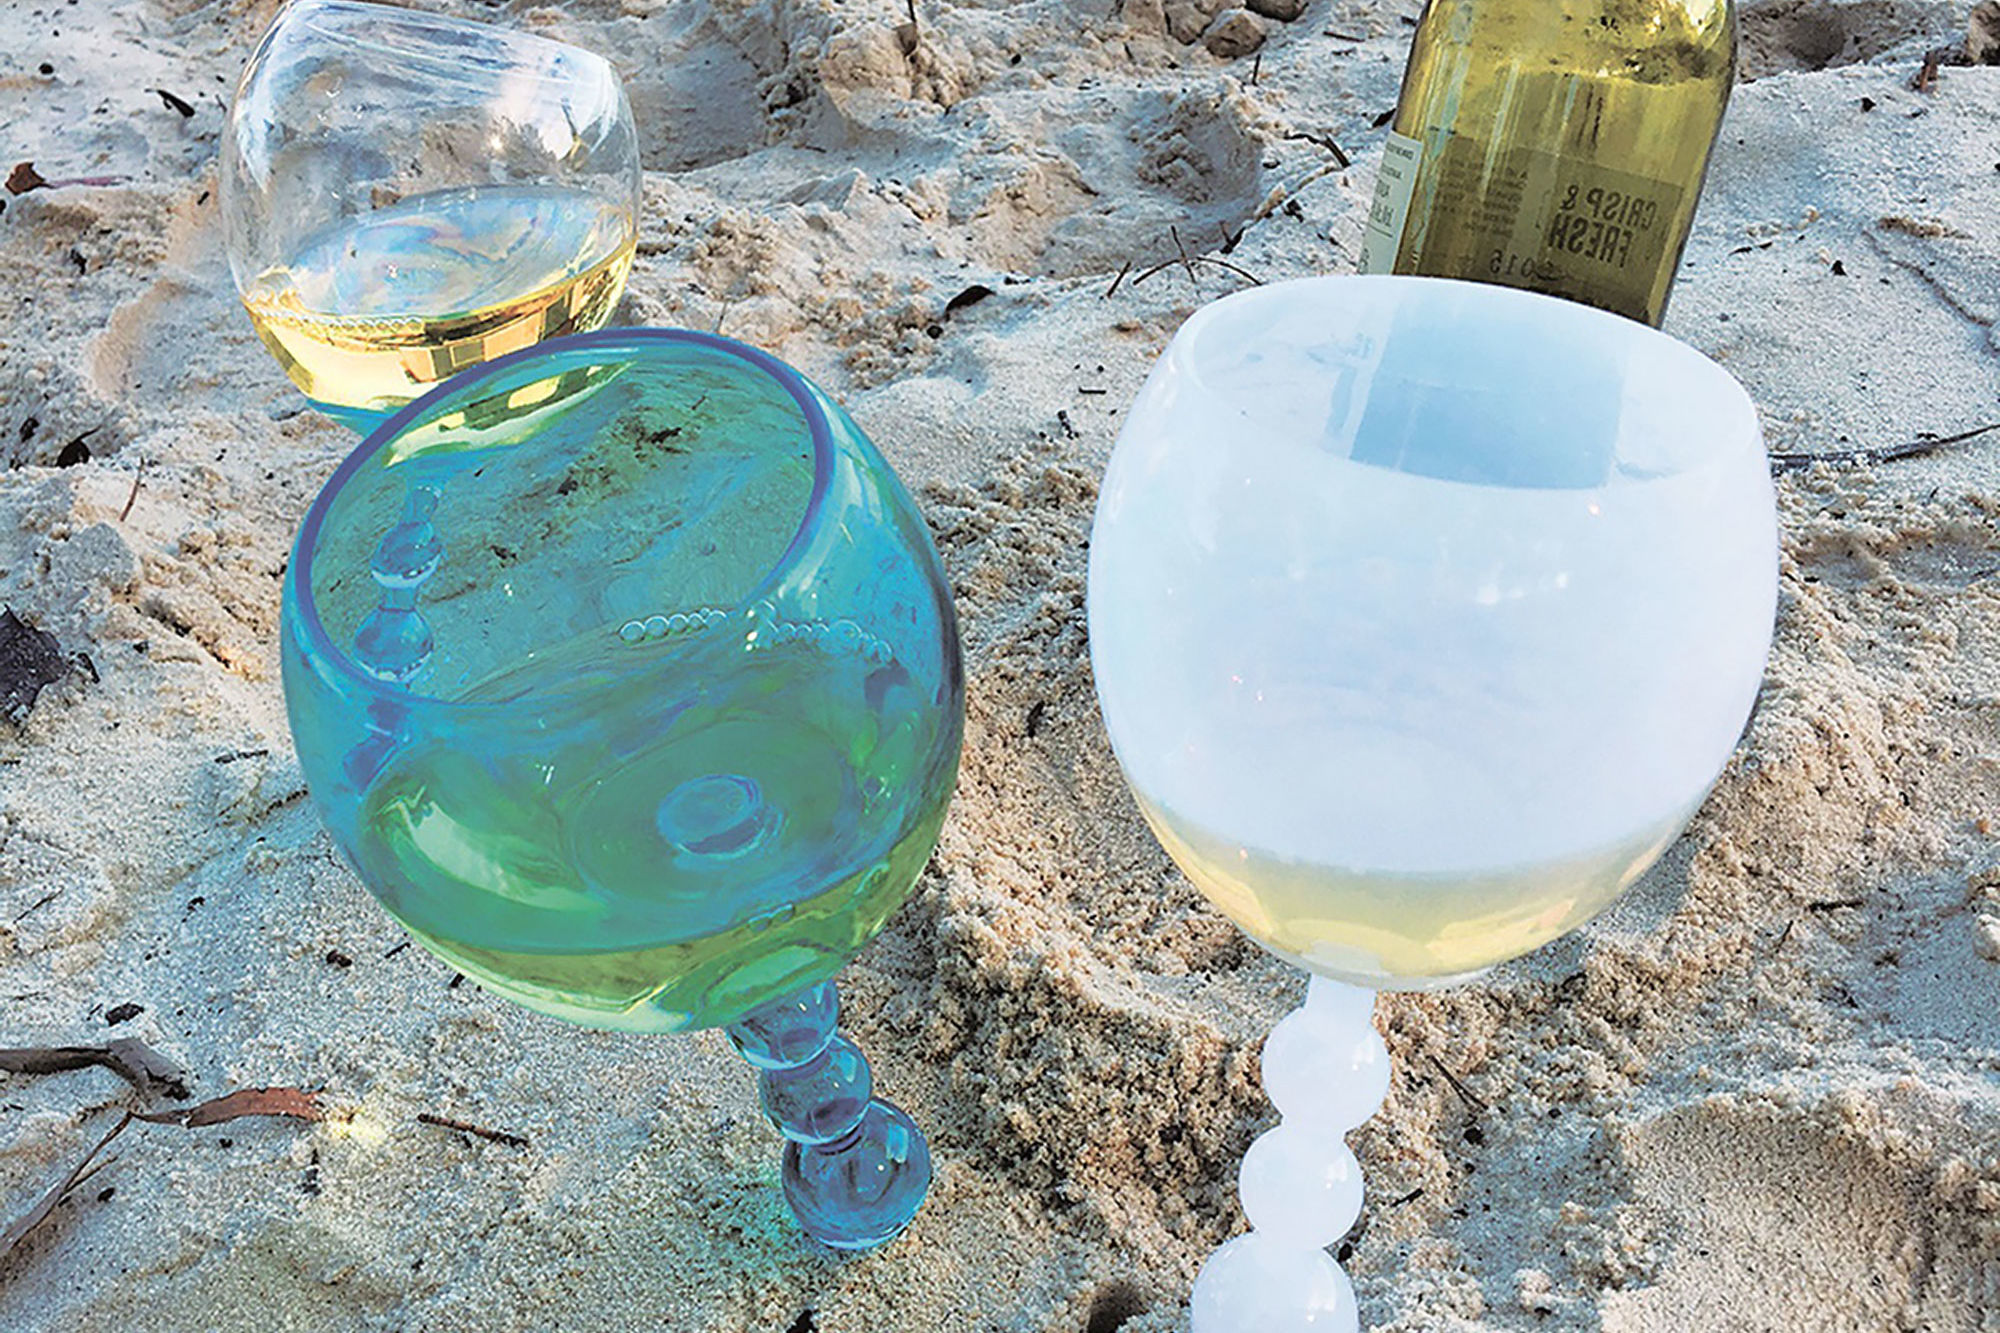 These Floating Wine Glasses From Aldi Are a Summer Essential